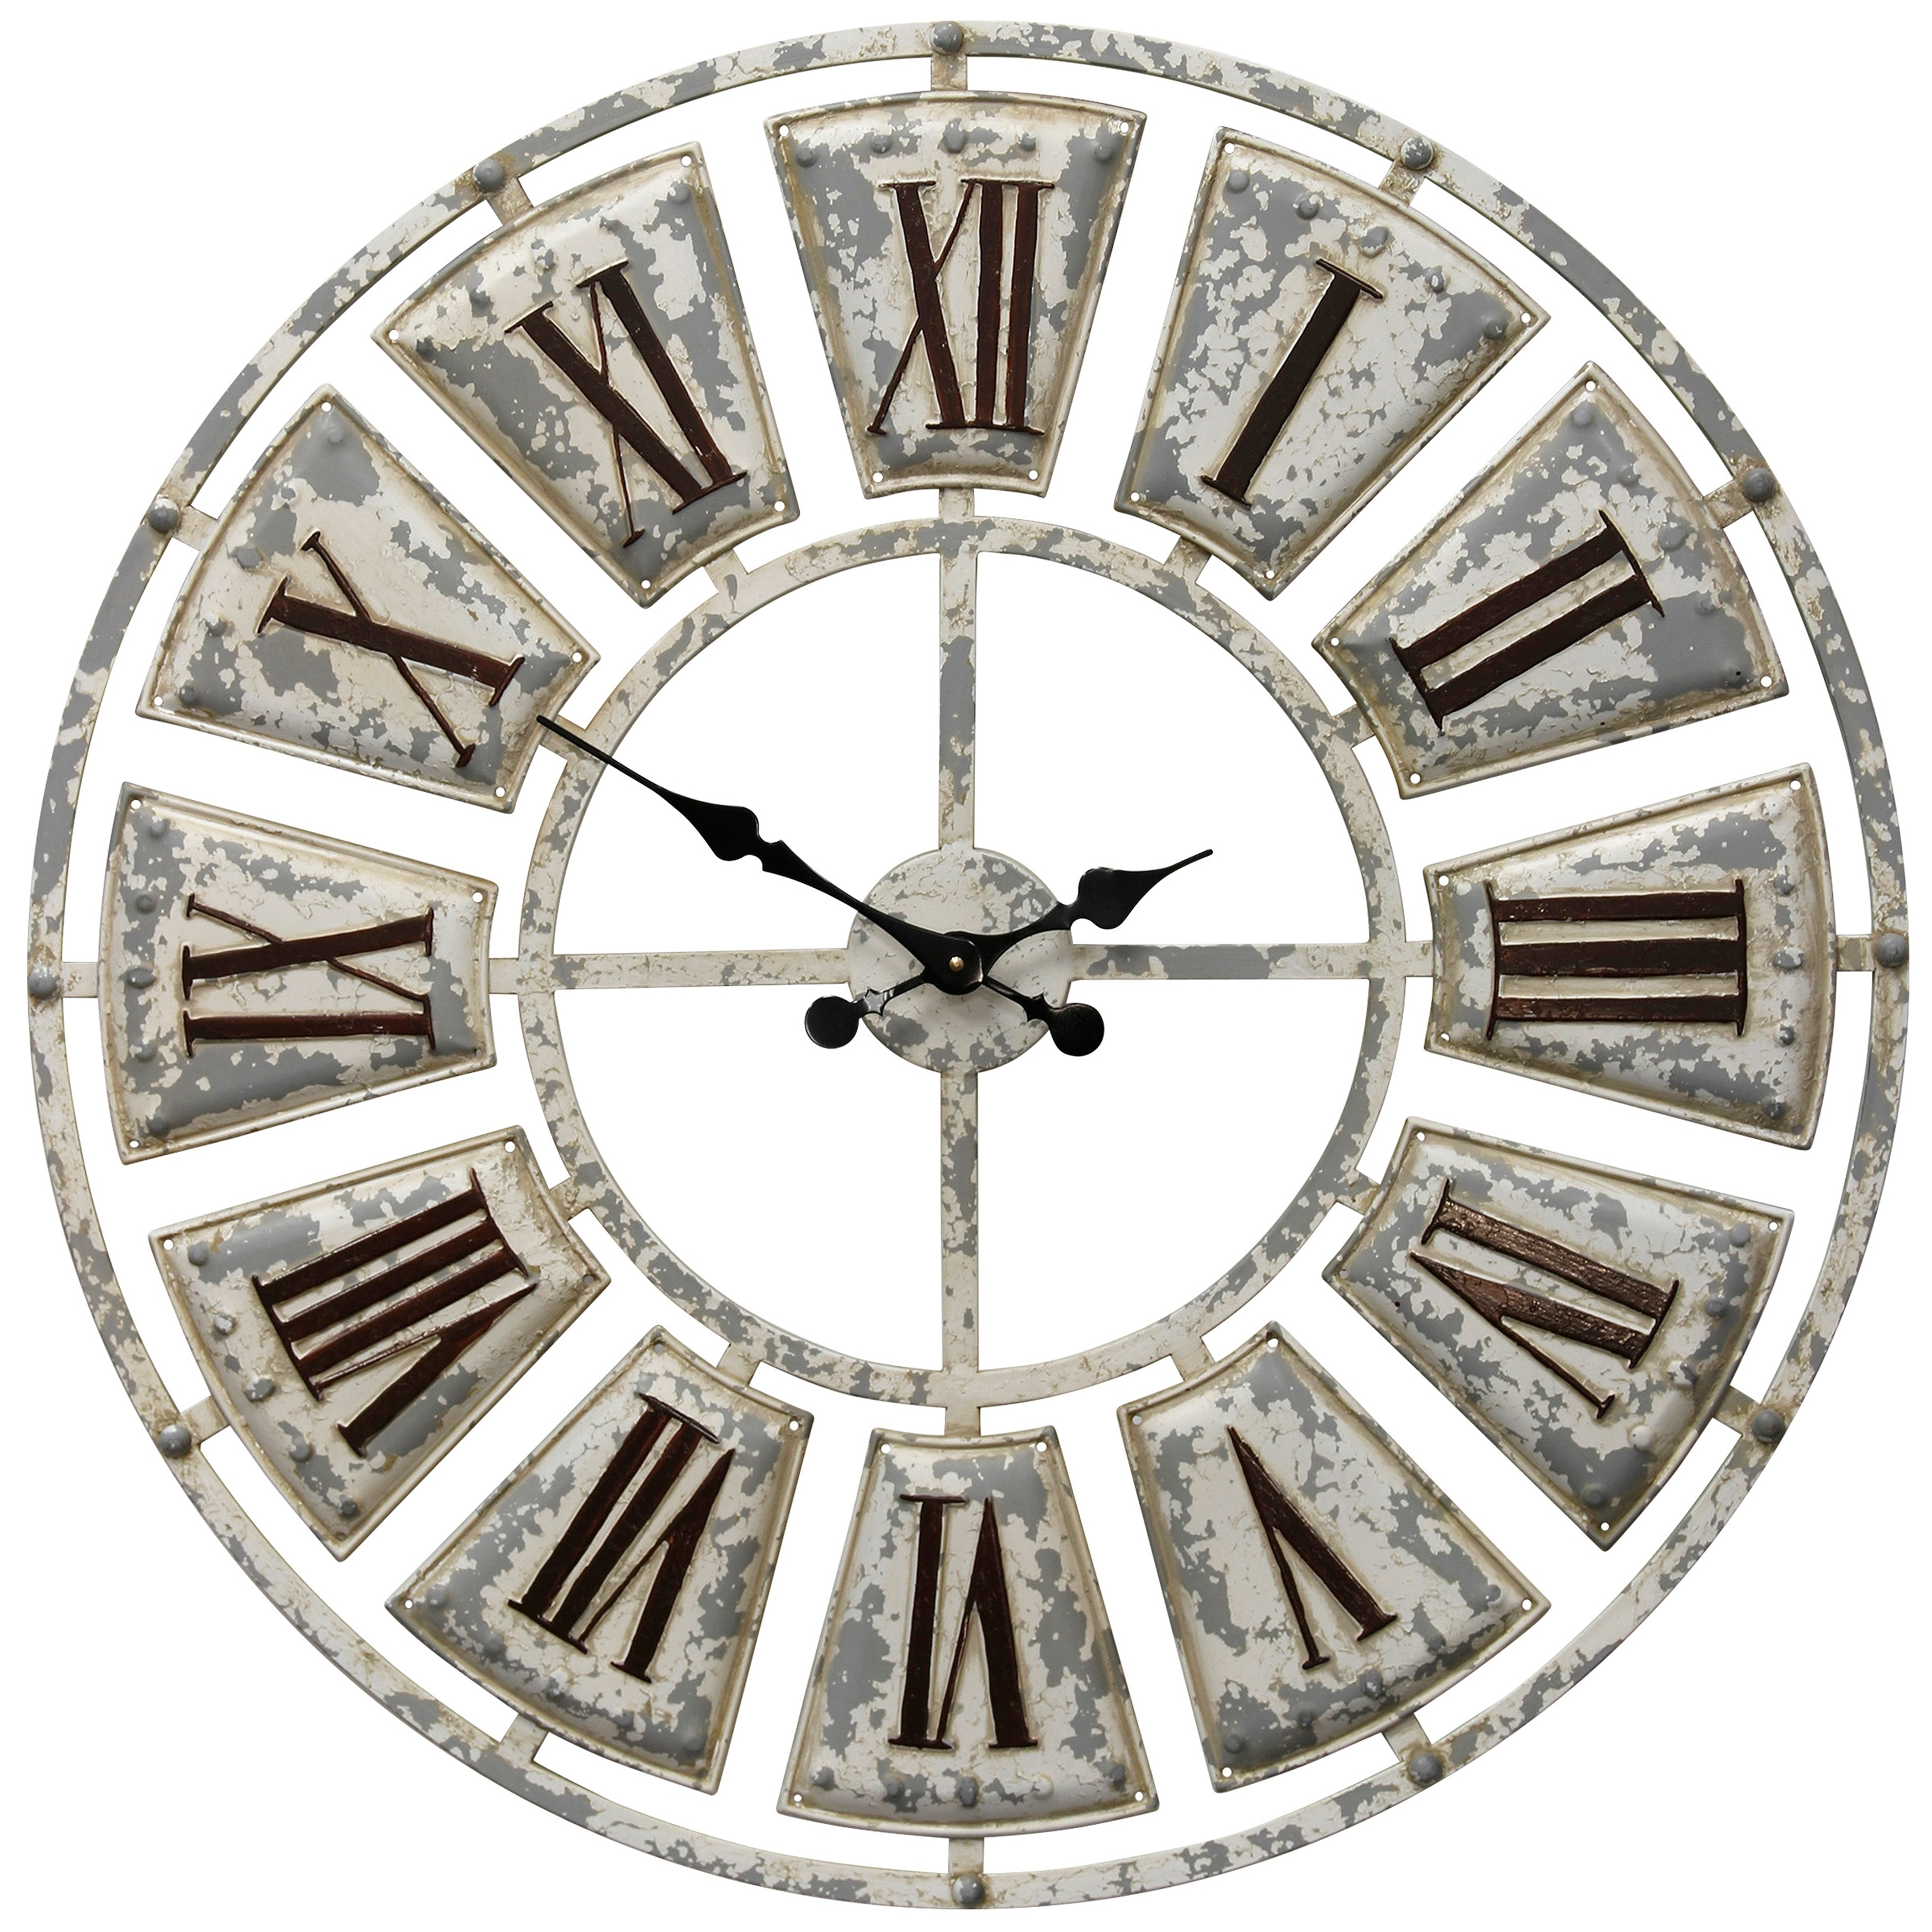 Round Wall Clock with Contrasting Dark Tone Finish Roman Numerals on Light Weathered Face